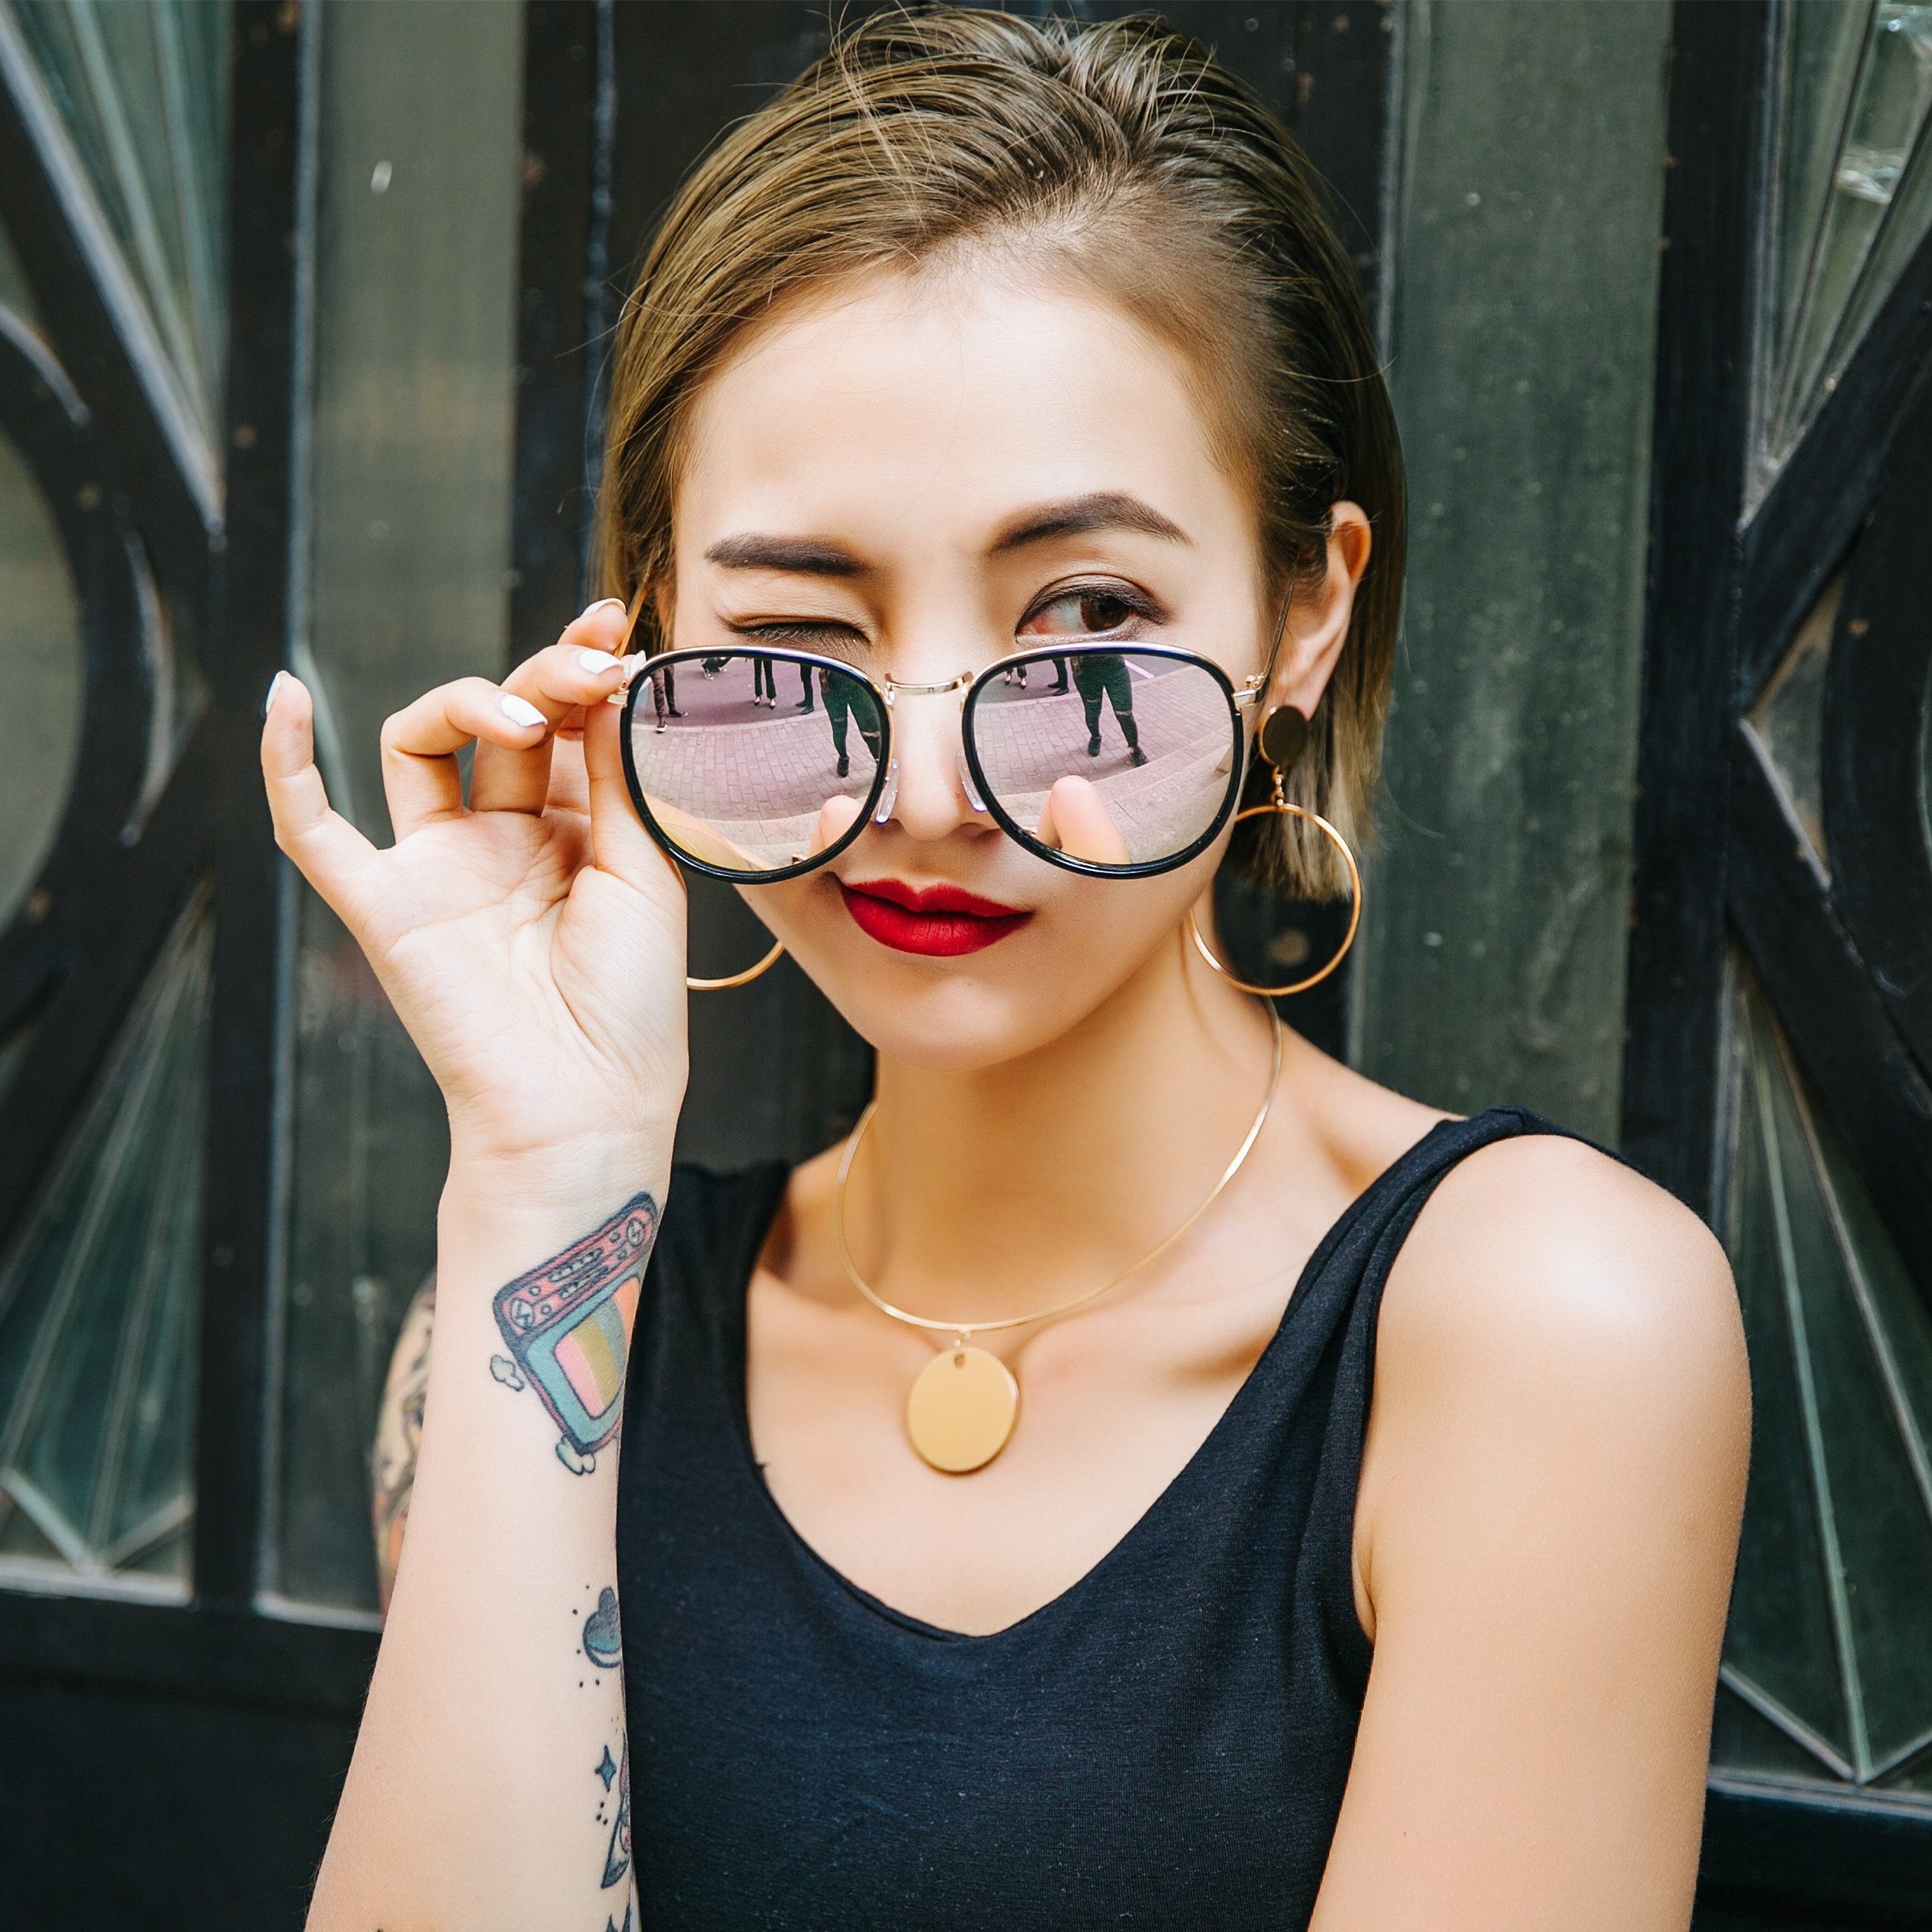 e53a895da13 Buy Large round frame sunglasses female tide 2016 korean version of the  upscale polariscope round sunglasses for men and women face garde  personality eyes ...